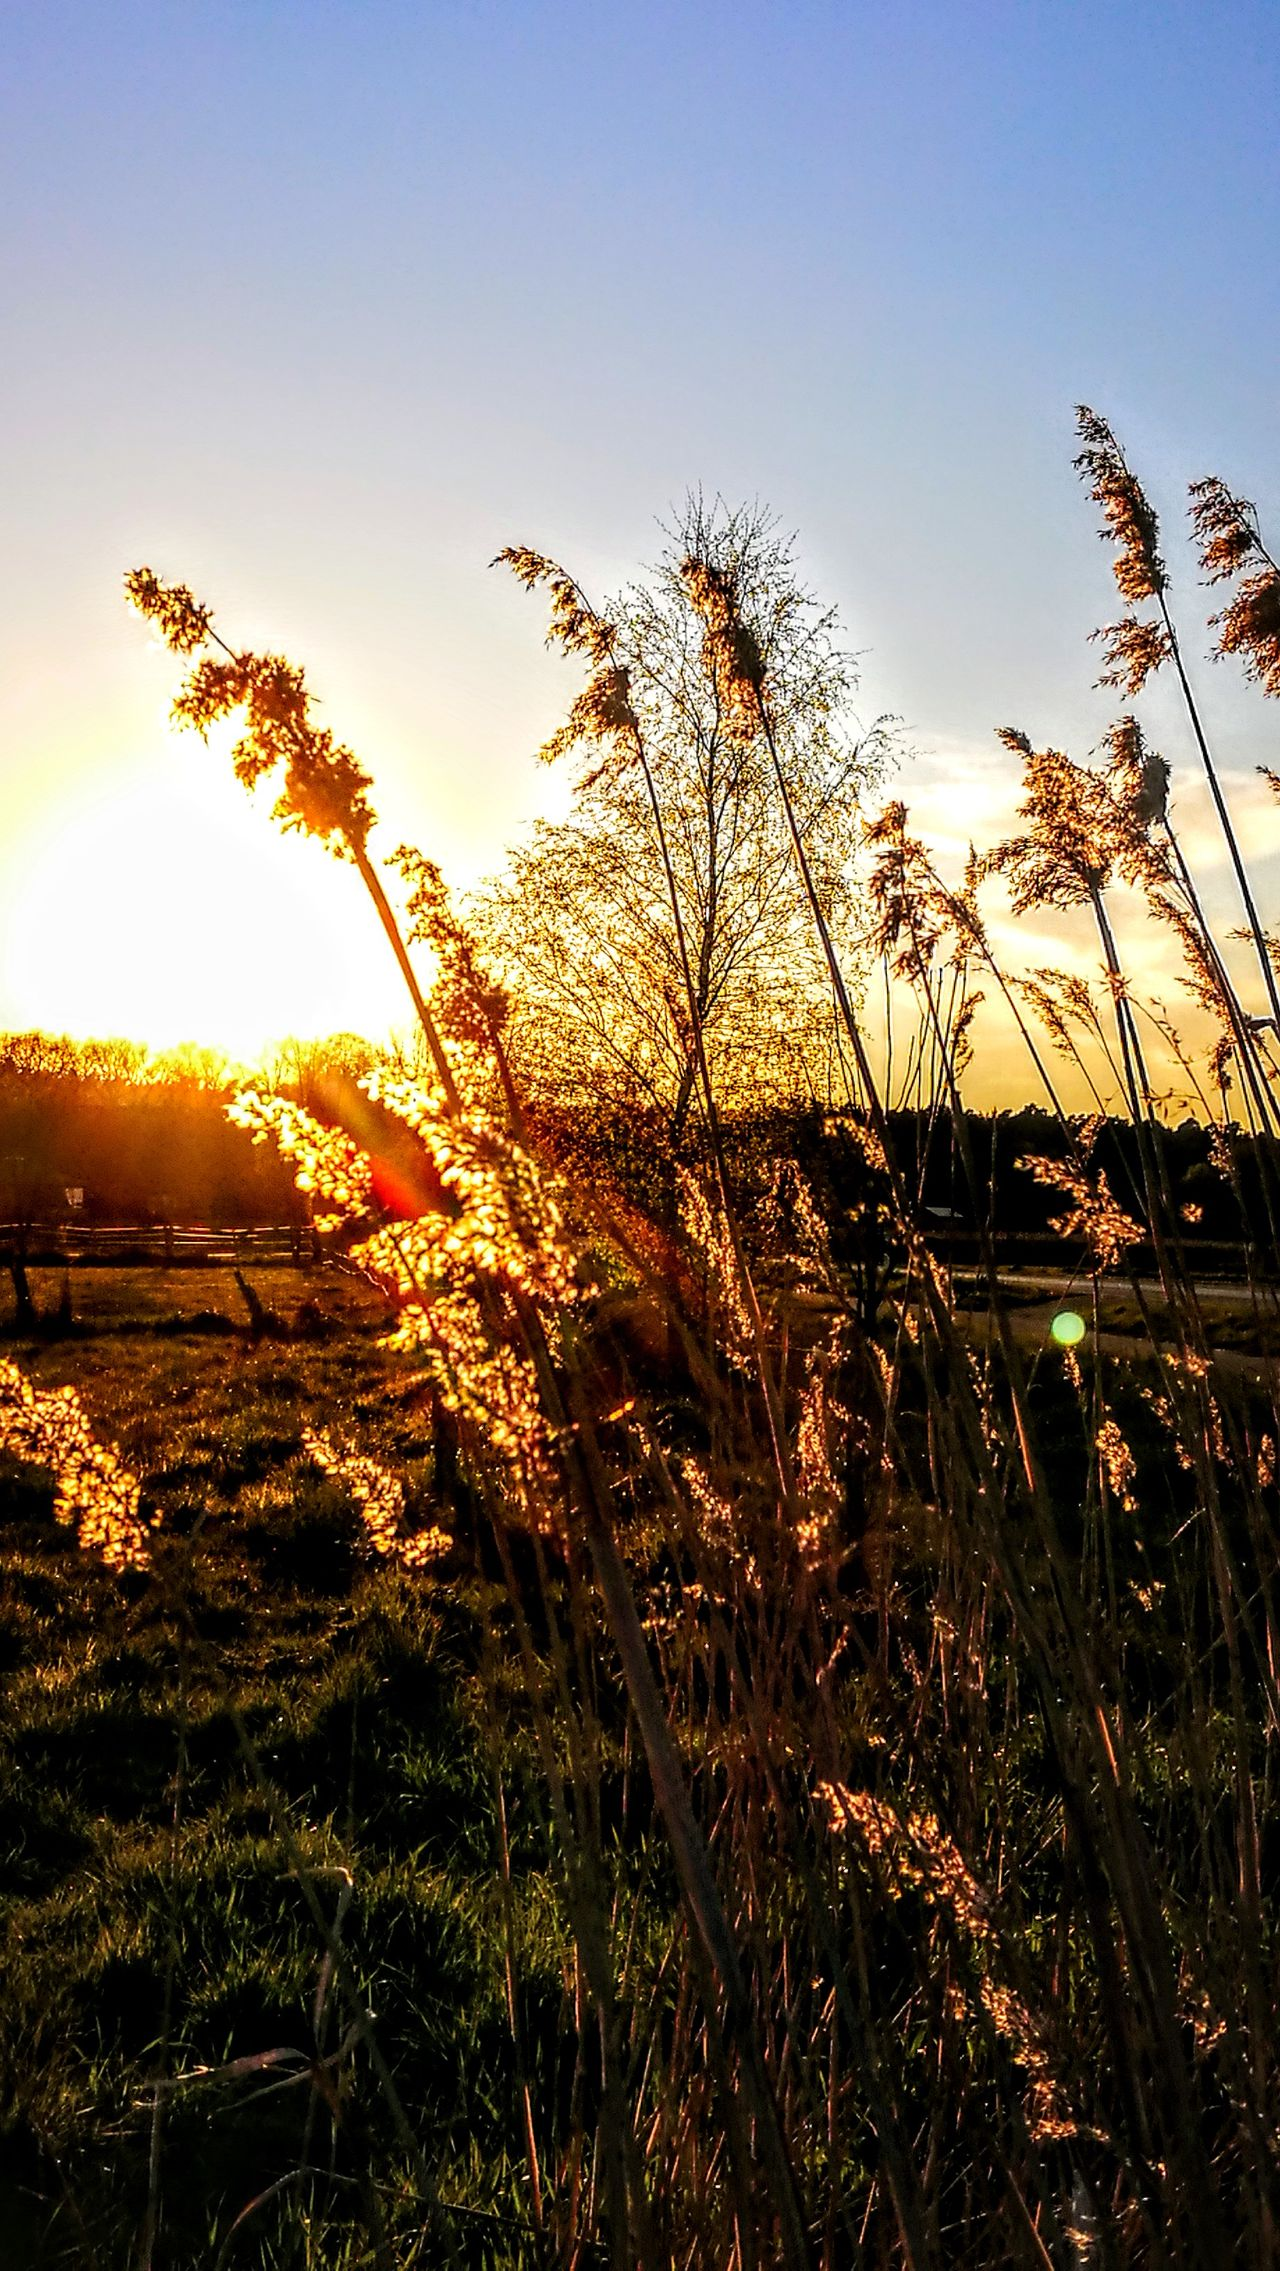 Wild Nature...in Sundown... Growth Nature Sunset Grass Outdoors Plant Silhouette Field Sky Sunlight No People Beauty In Nature Tranquility Rural Scene GetbetterwithAlex Originalpicture Tranquil Scene Agriculture Day Scenics Flying Cereal Plant Bird